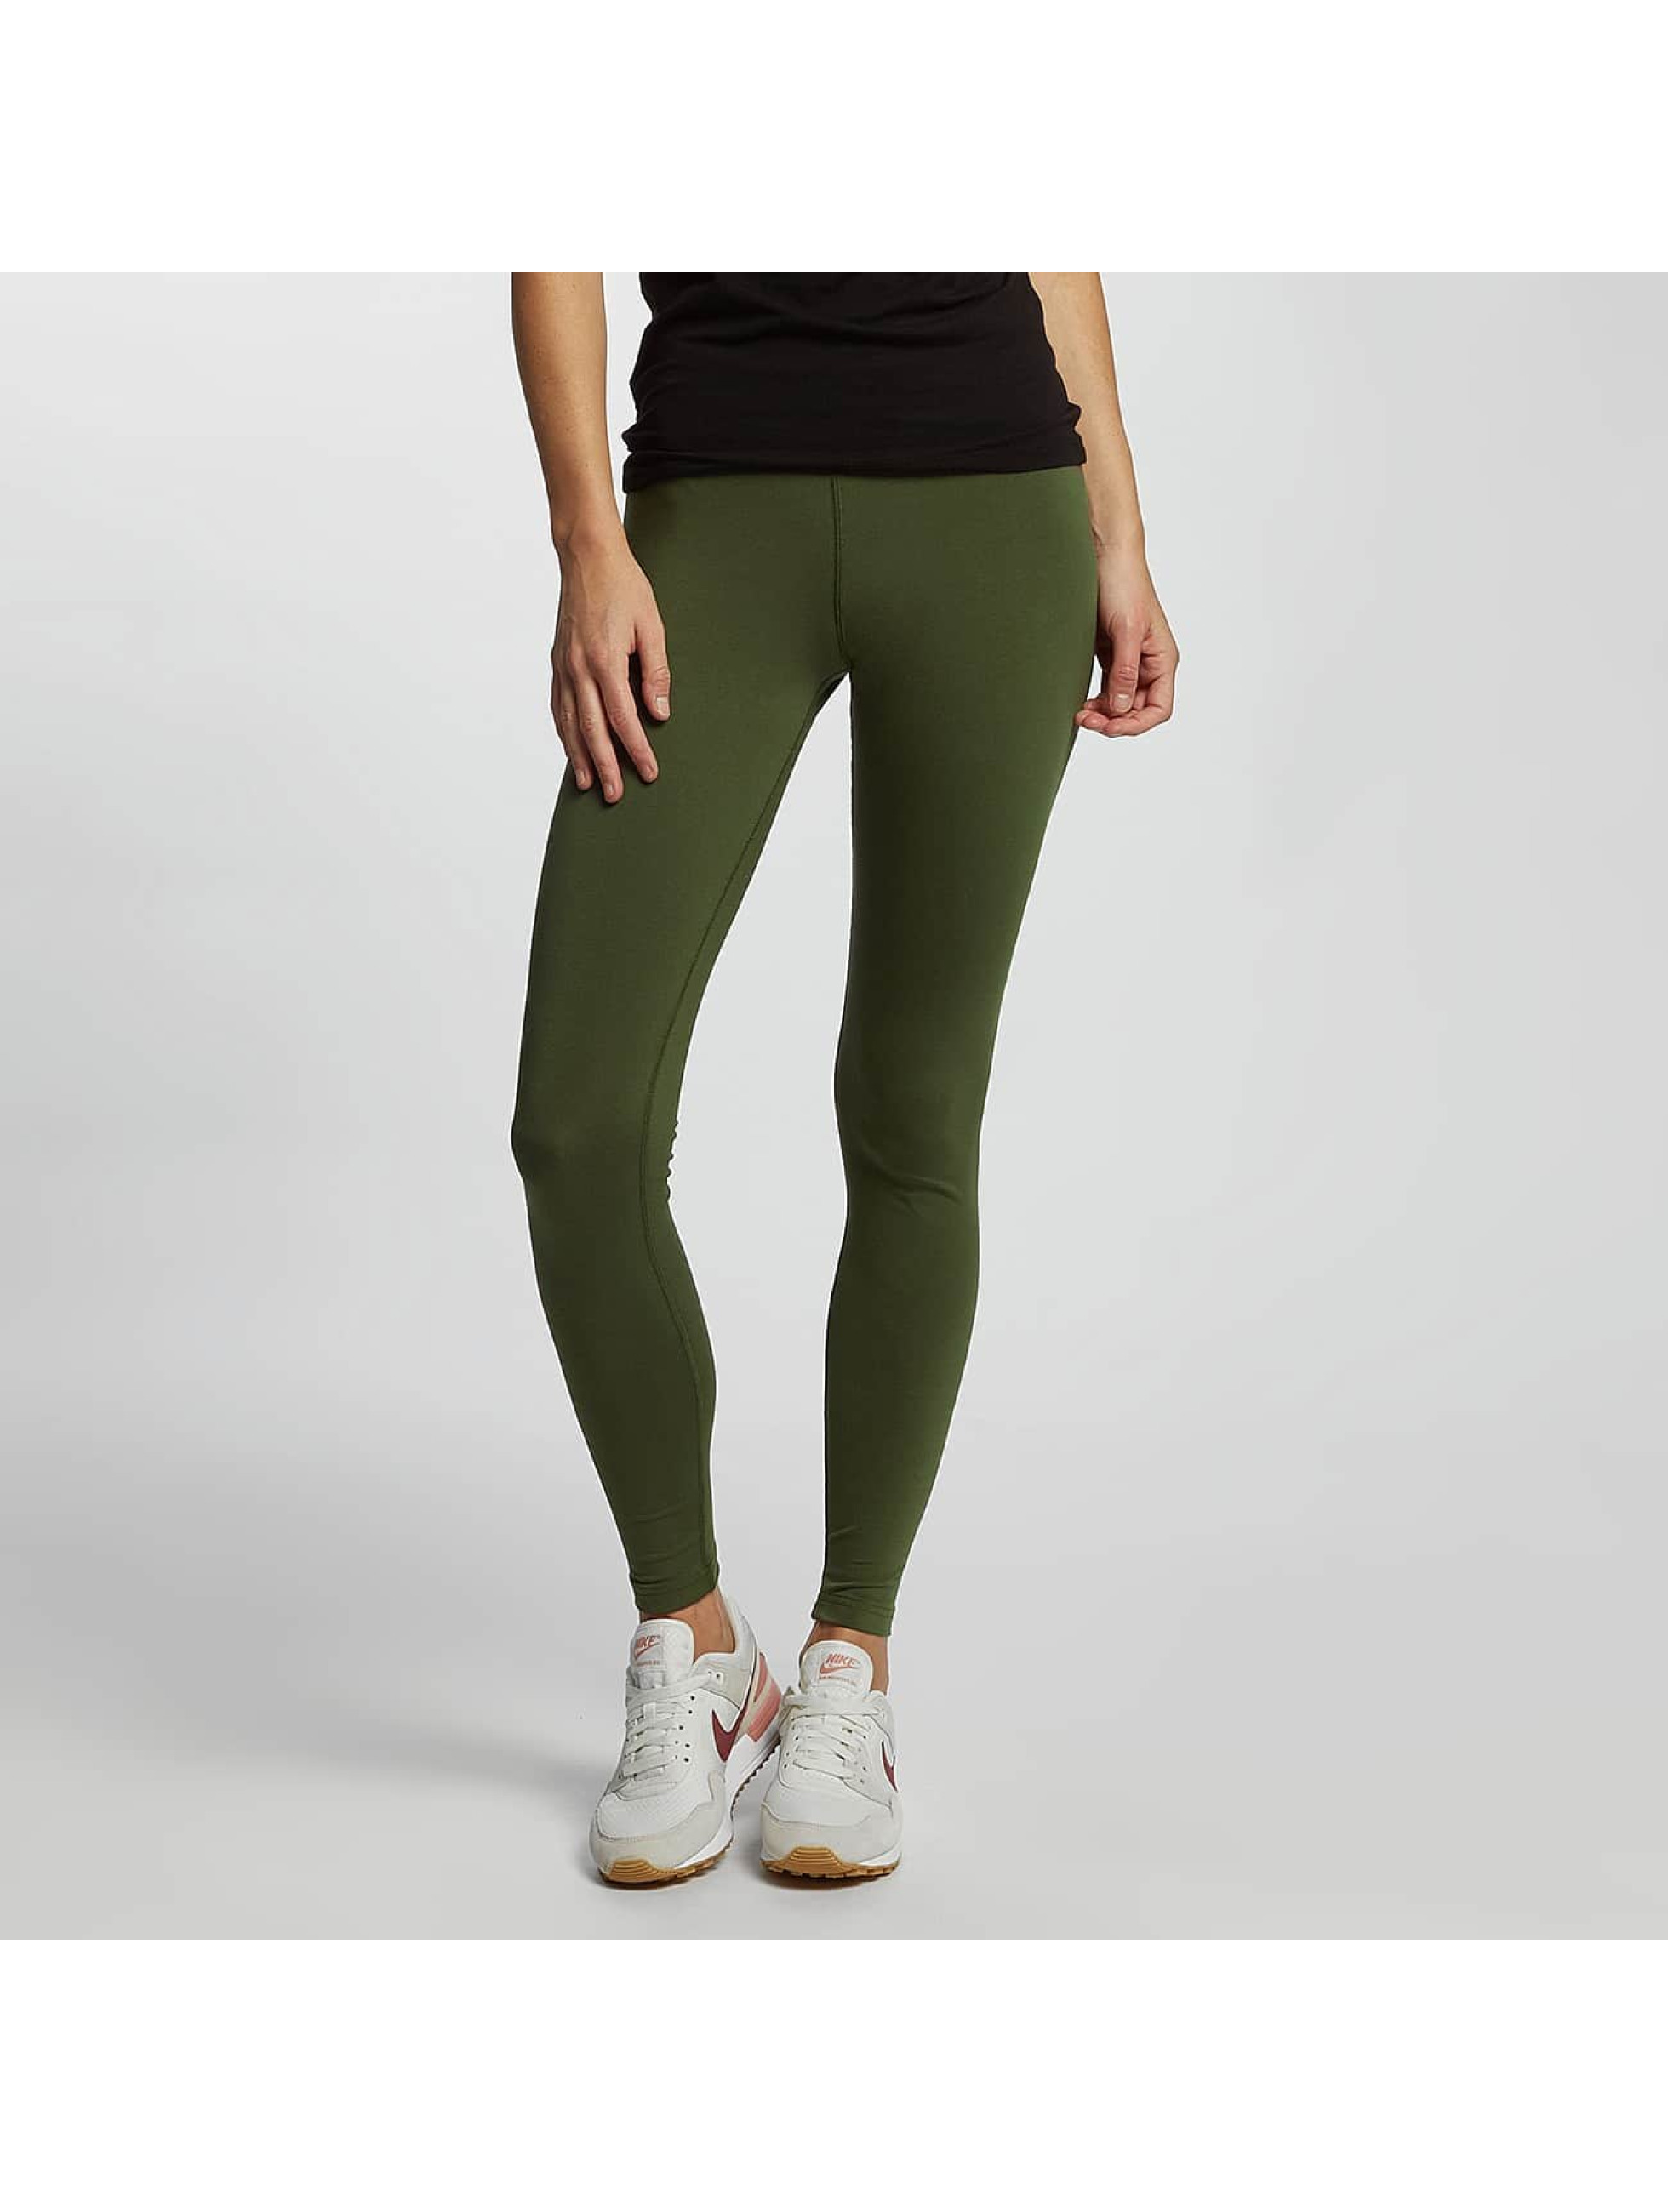 Nike Frauen Legging Just Do It in olive